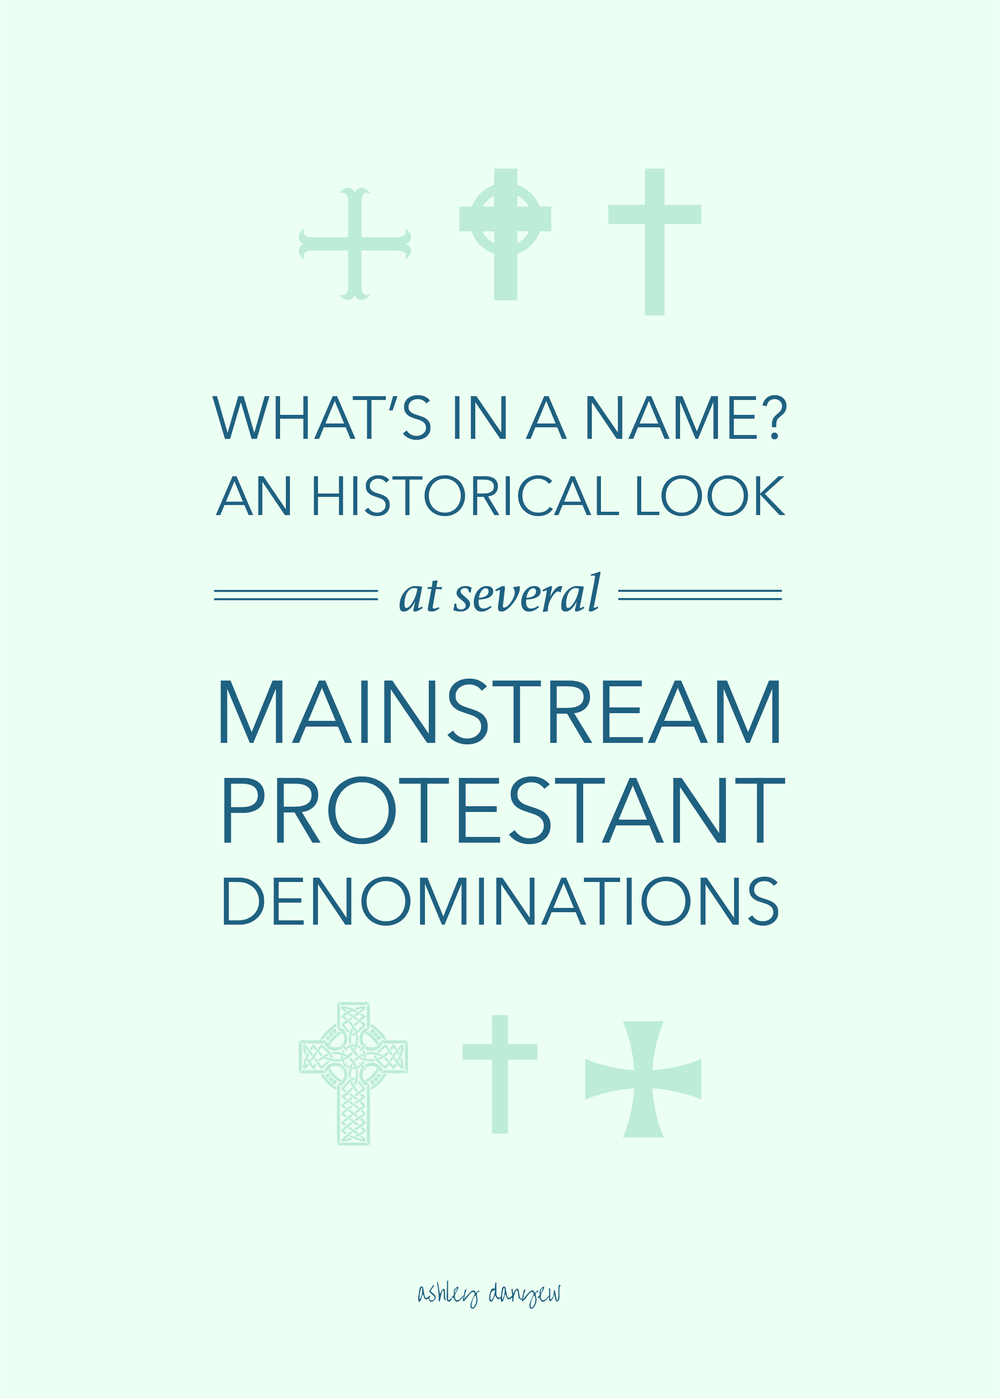 Copy of What's in a Name? An Historical Look at Several Mainstream Protestant Denominations